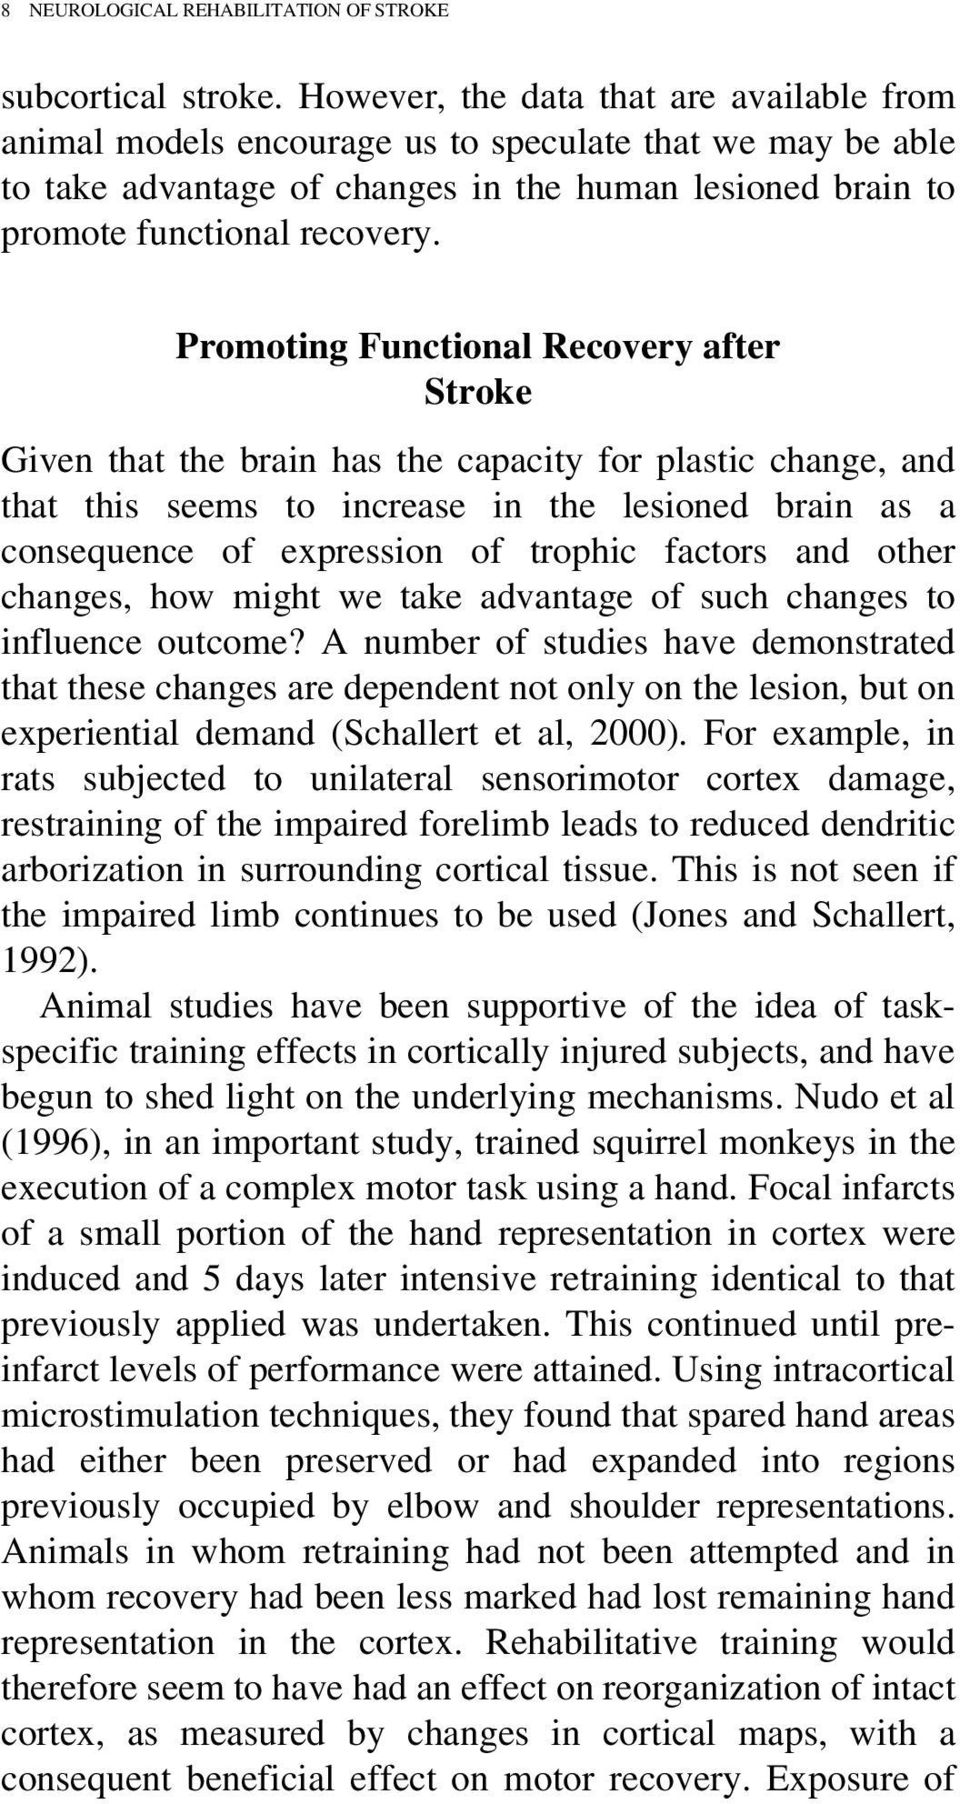 Promoting Functional Recovery after Stroke Given that the brain has the capacity for plastic change, and that this seems to increase in the lesioned brain as a consequence of expression of trophic